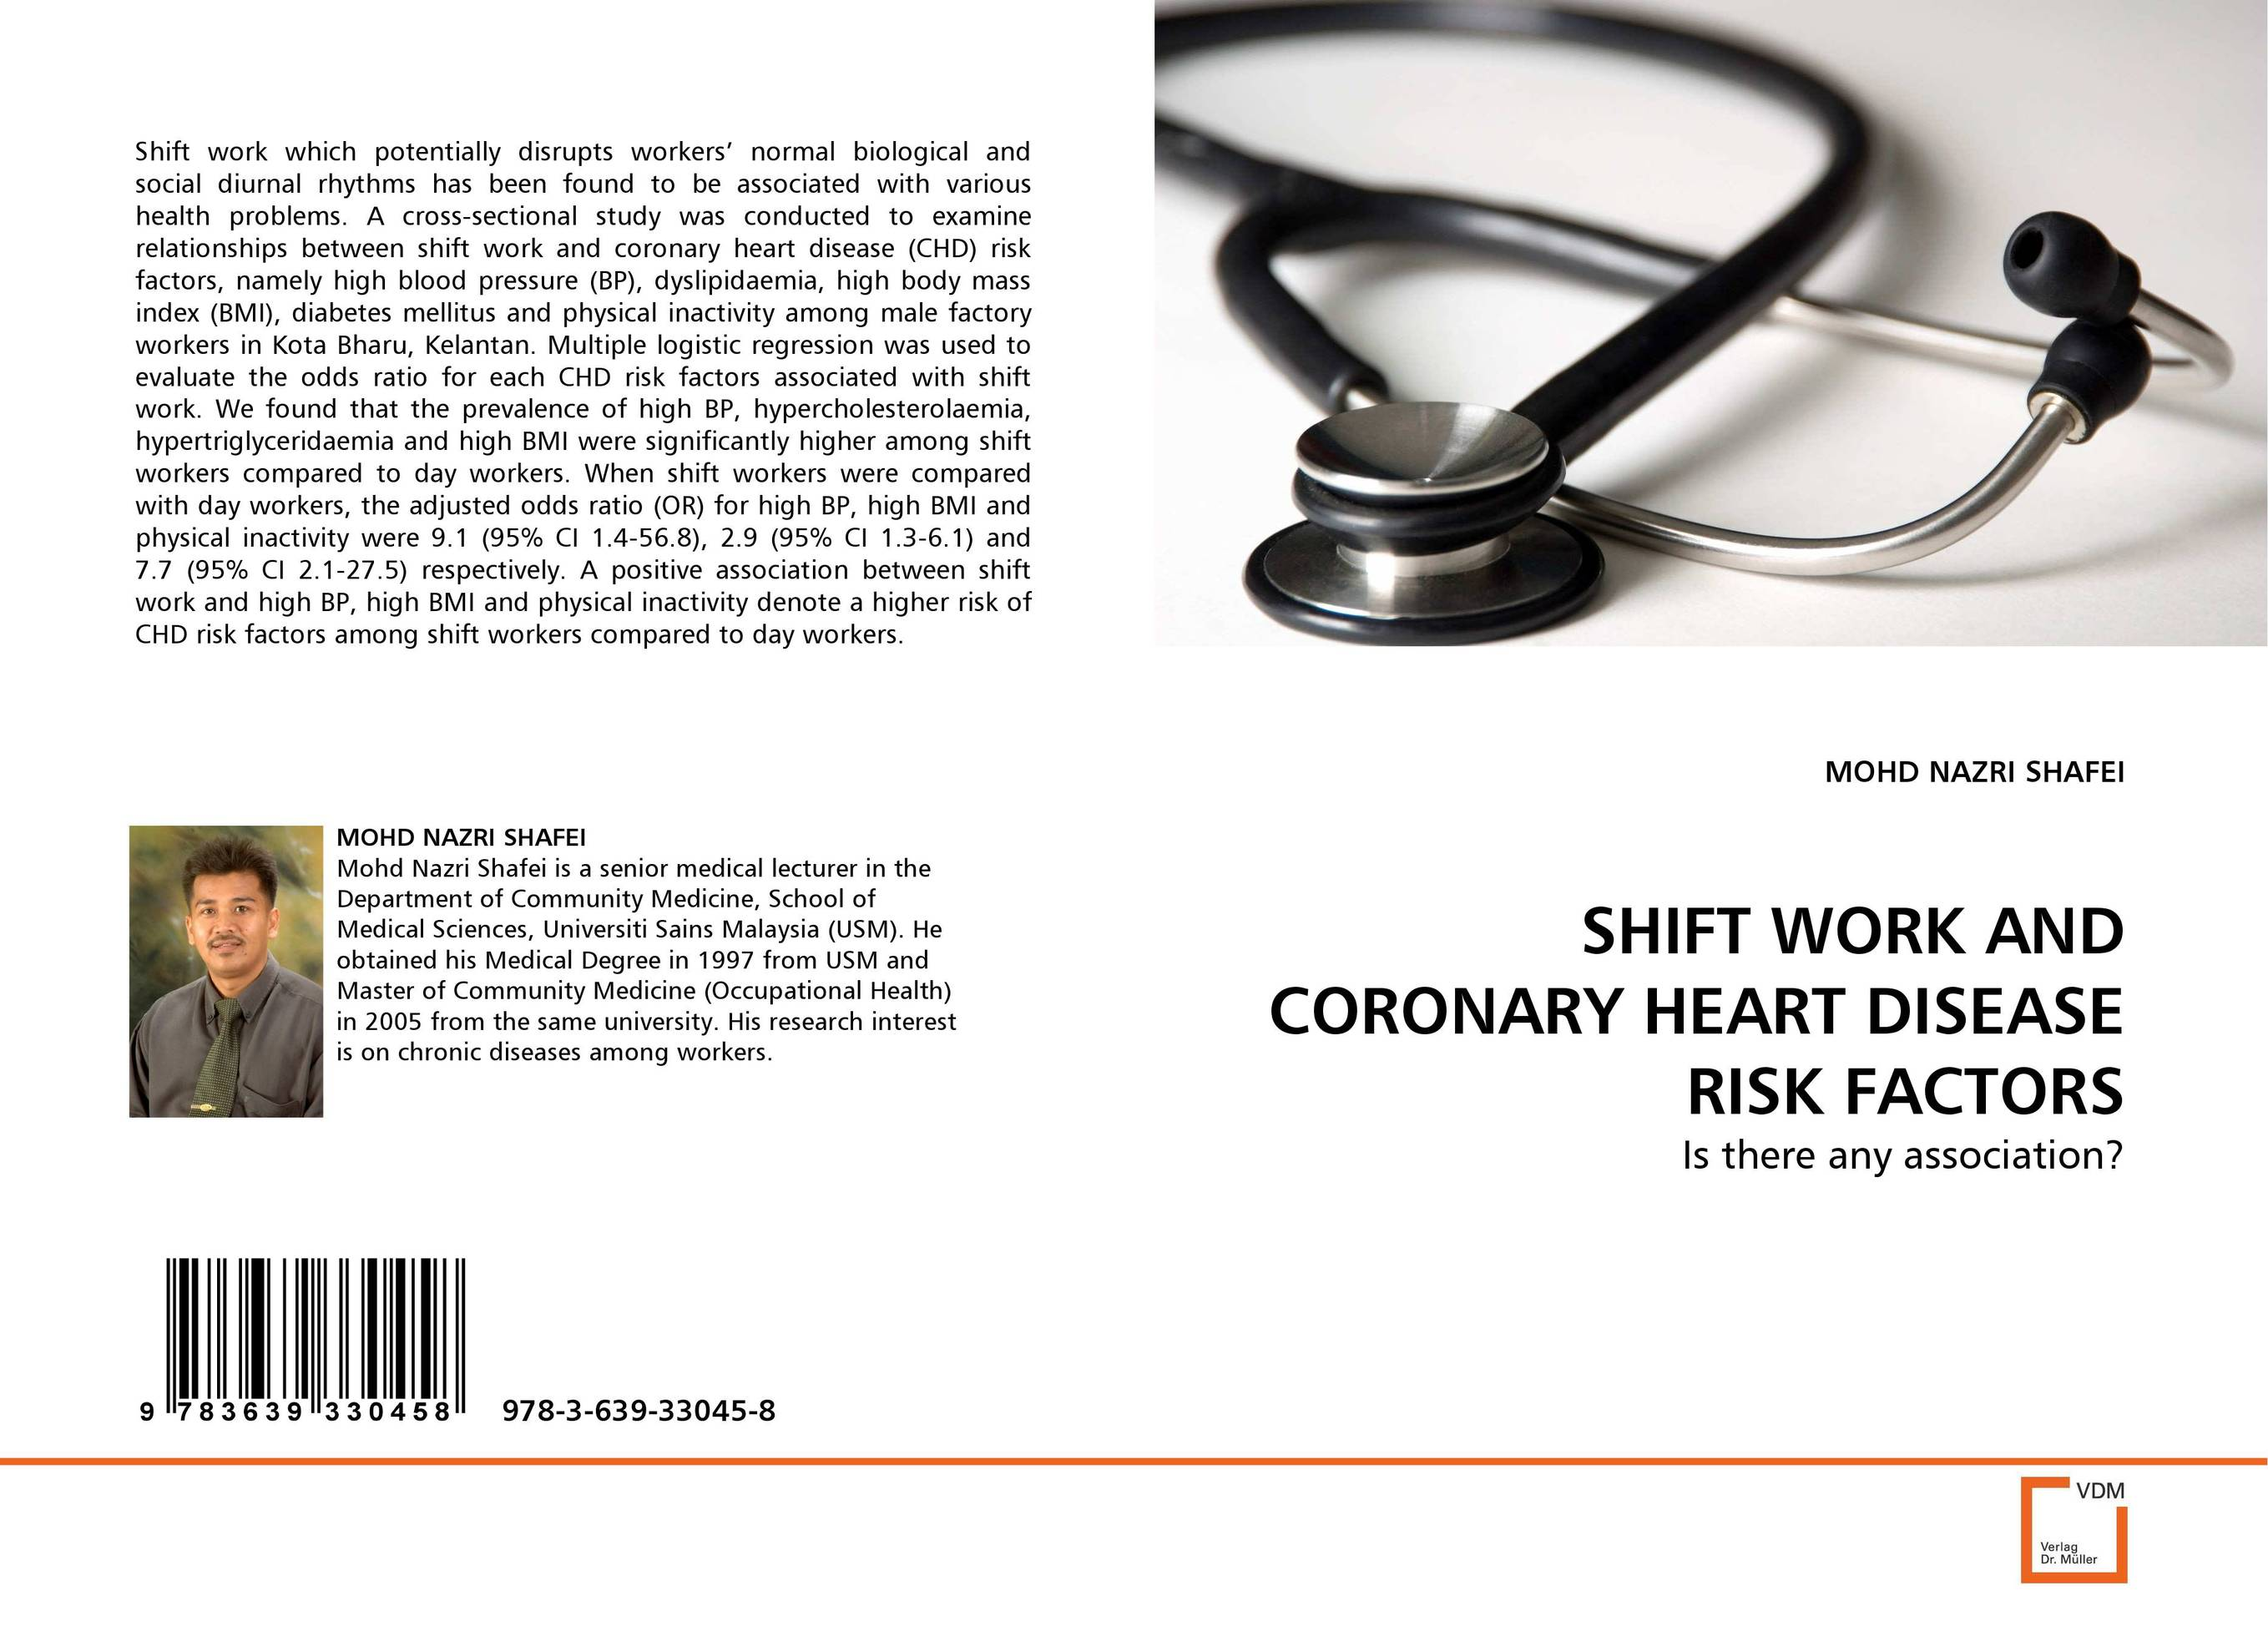 SHIFT WORK AND CORONARY HEART DISEASE RISK FACTORS abo and genetic risk factors associated with venous thrombosis